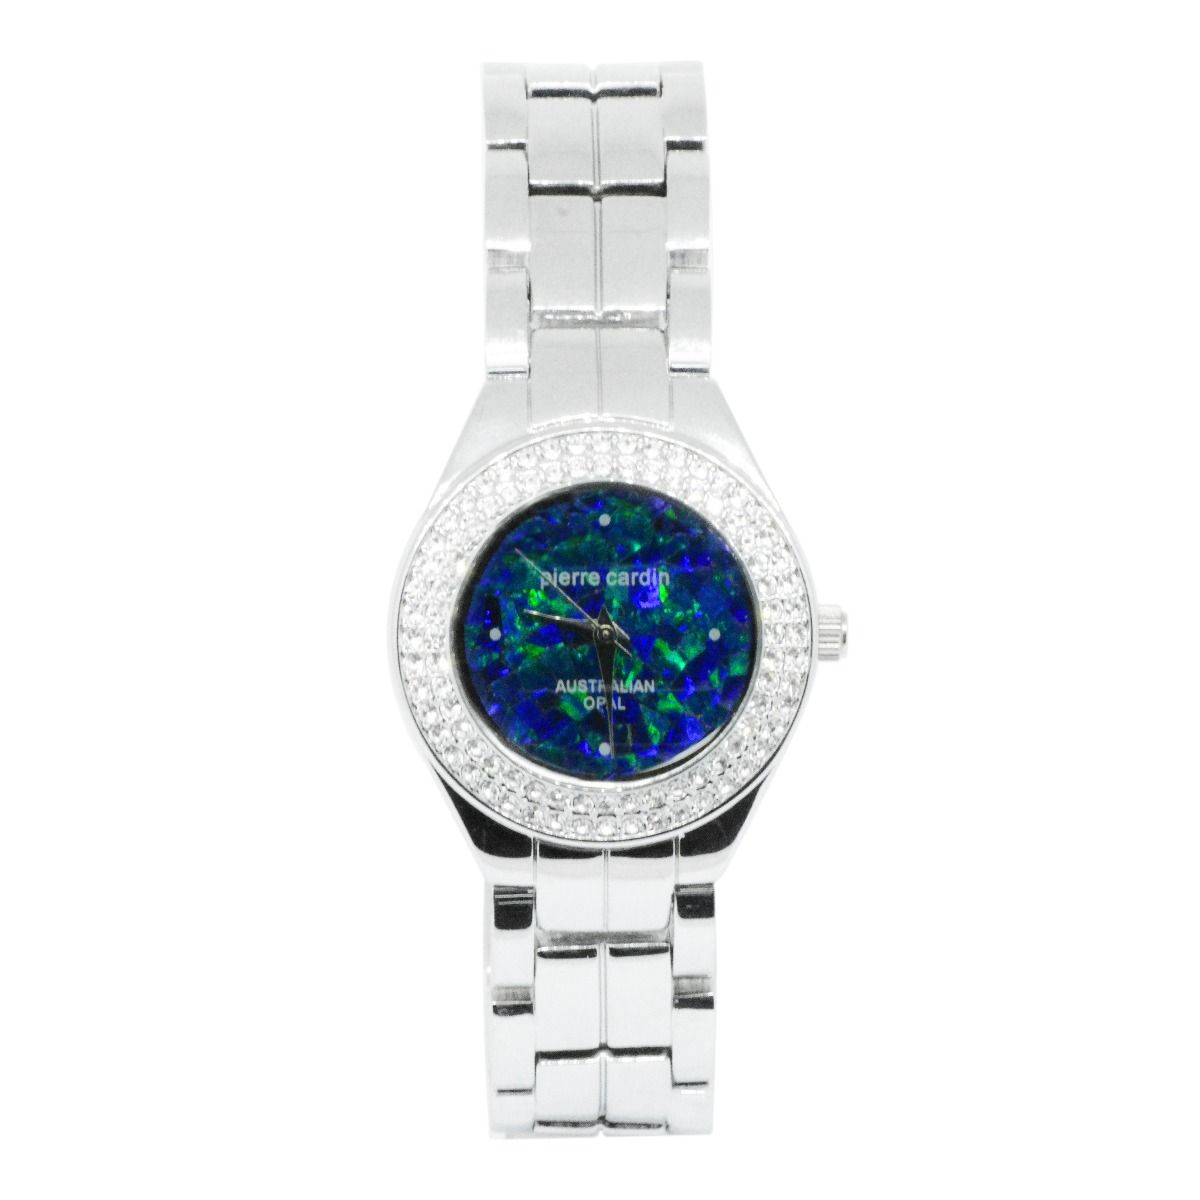 30mm Ladies Pierre Cardin Opal Face Inlay Watch with Czech Crystals